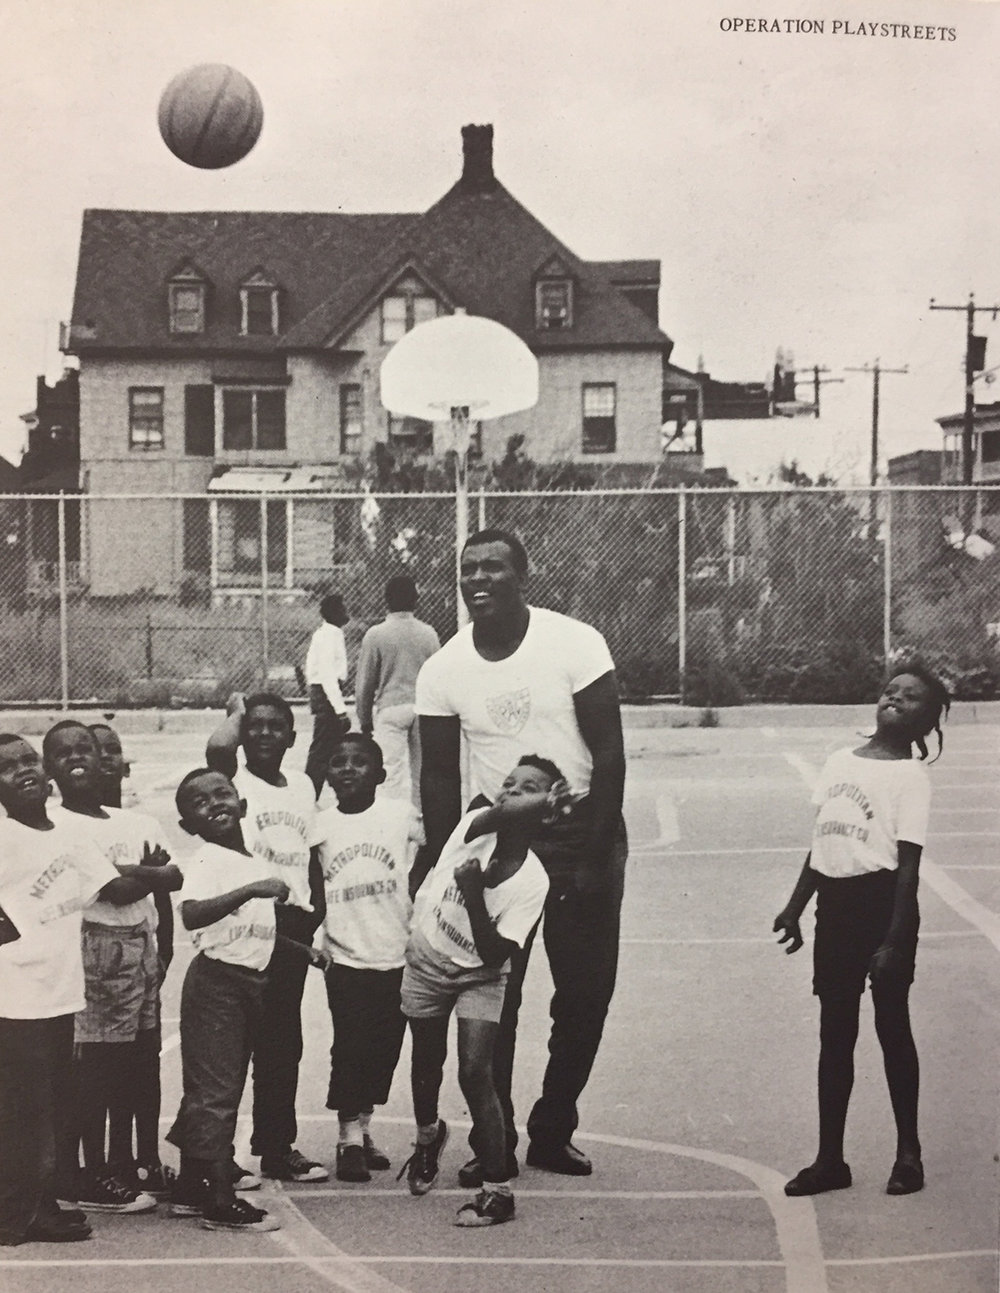 Police Athletic League playstreet in Far Rockaway, Queens.  Report of the Citizens Summer Committee, October 2, 1967 . NYC Municipal Library.